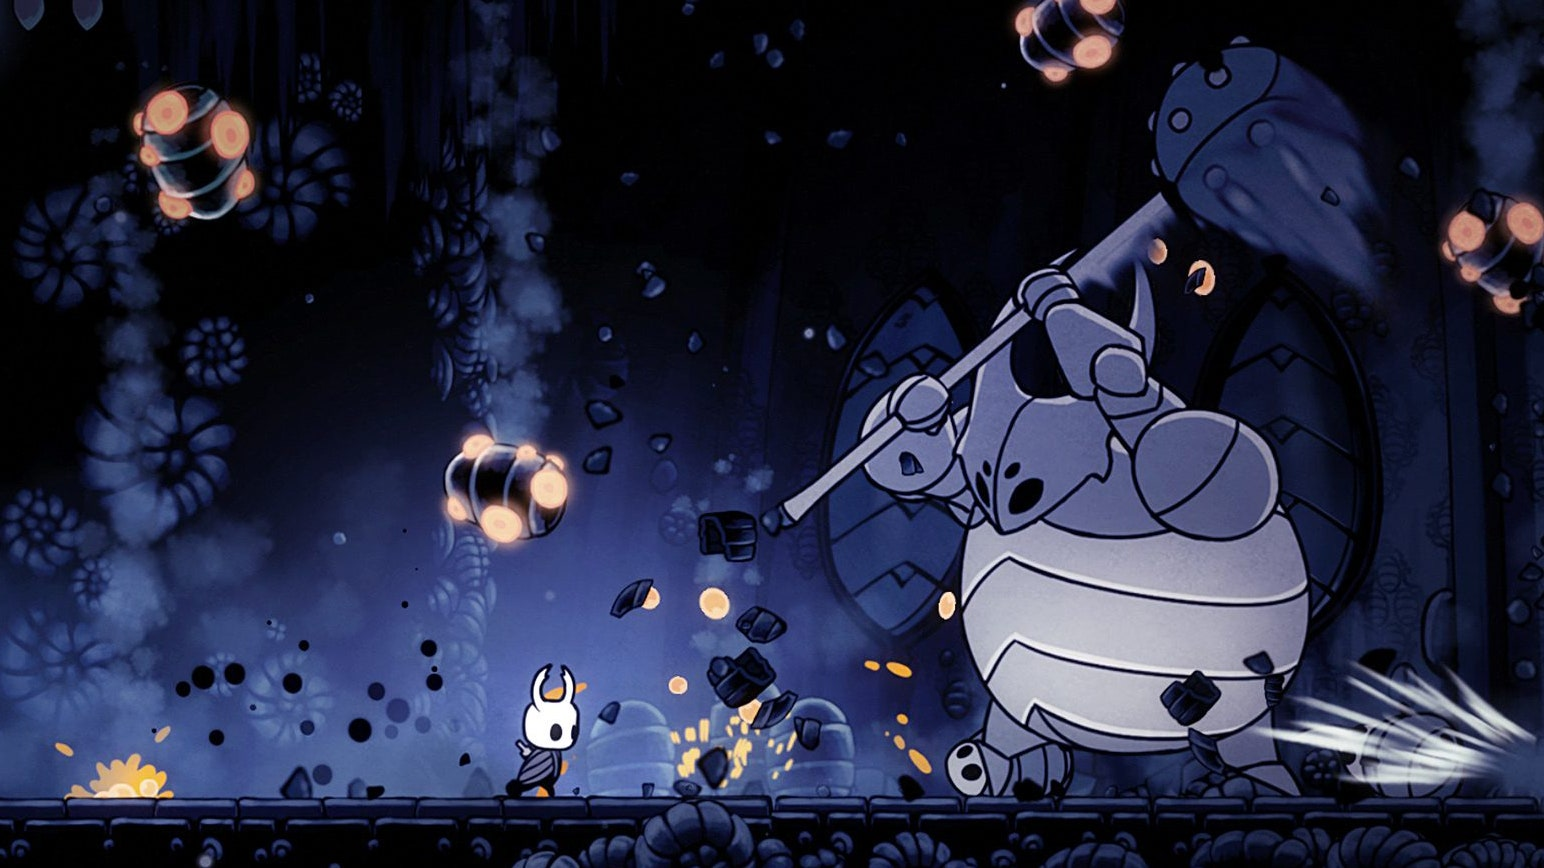 Hollow Knight as a good handheld game